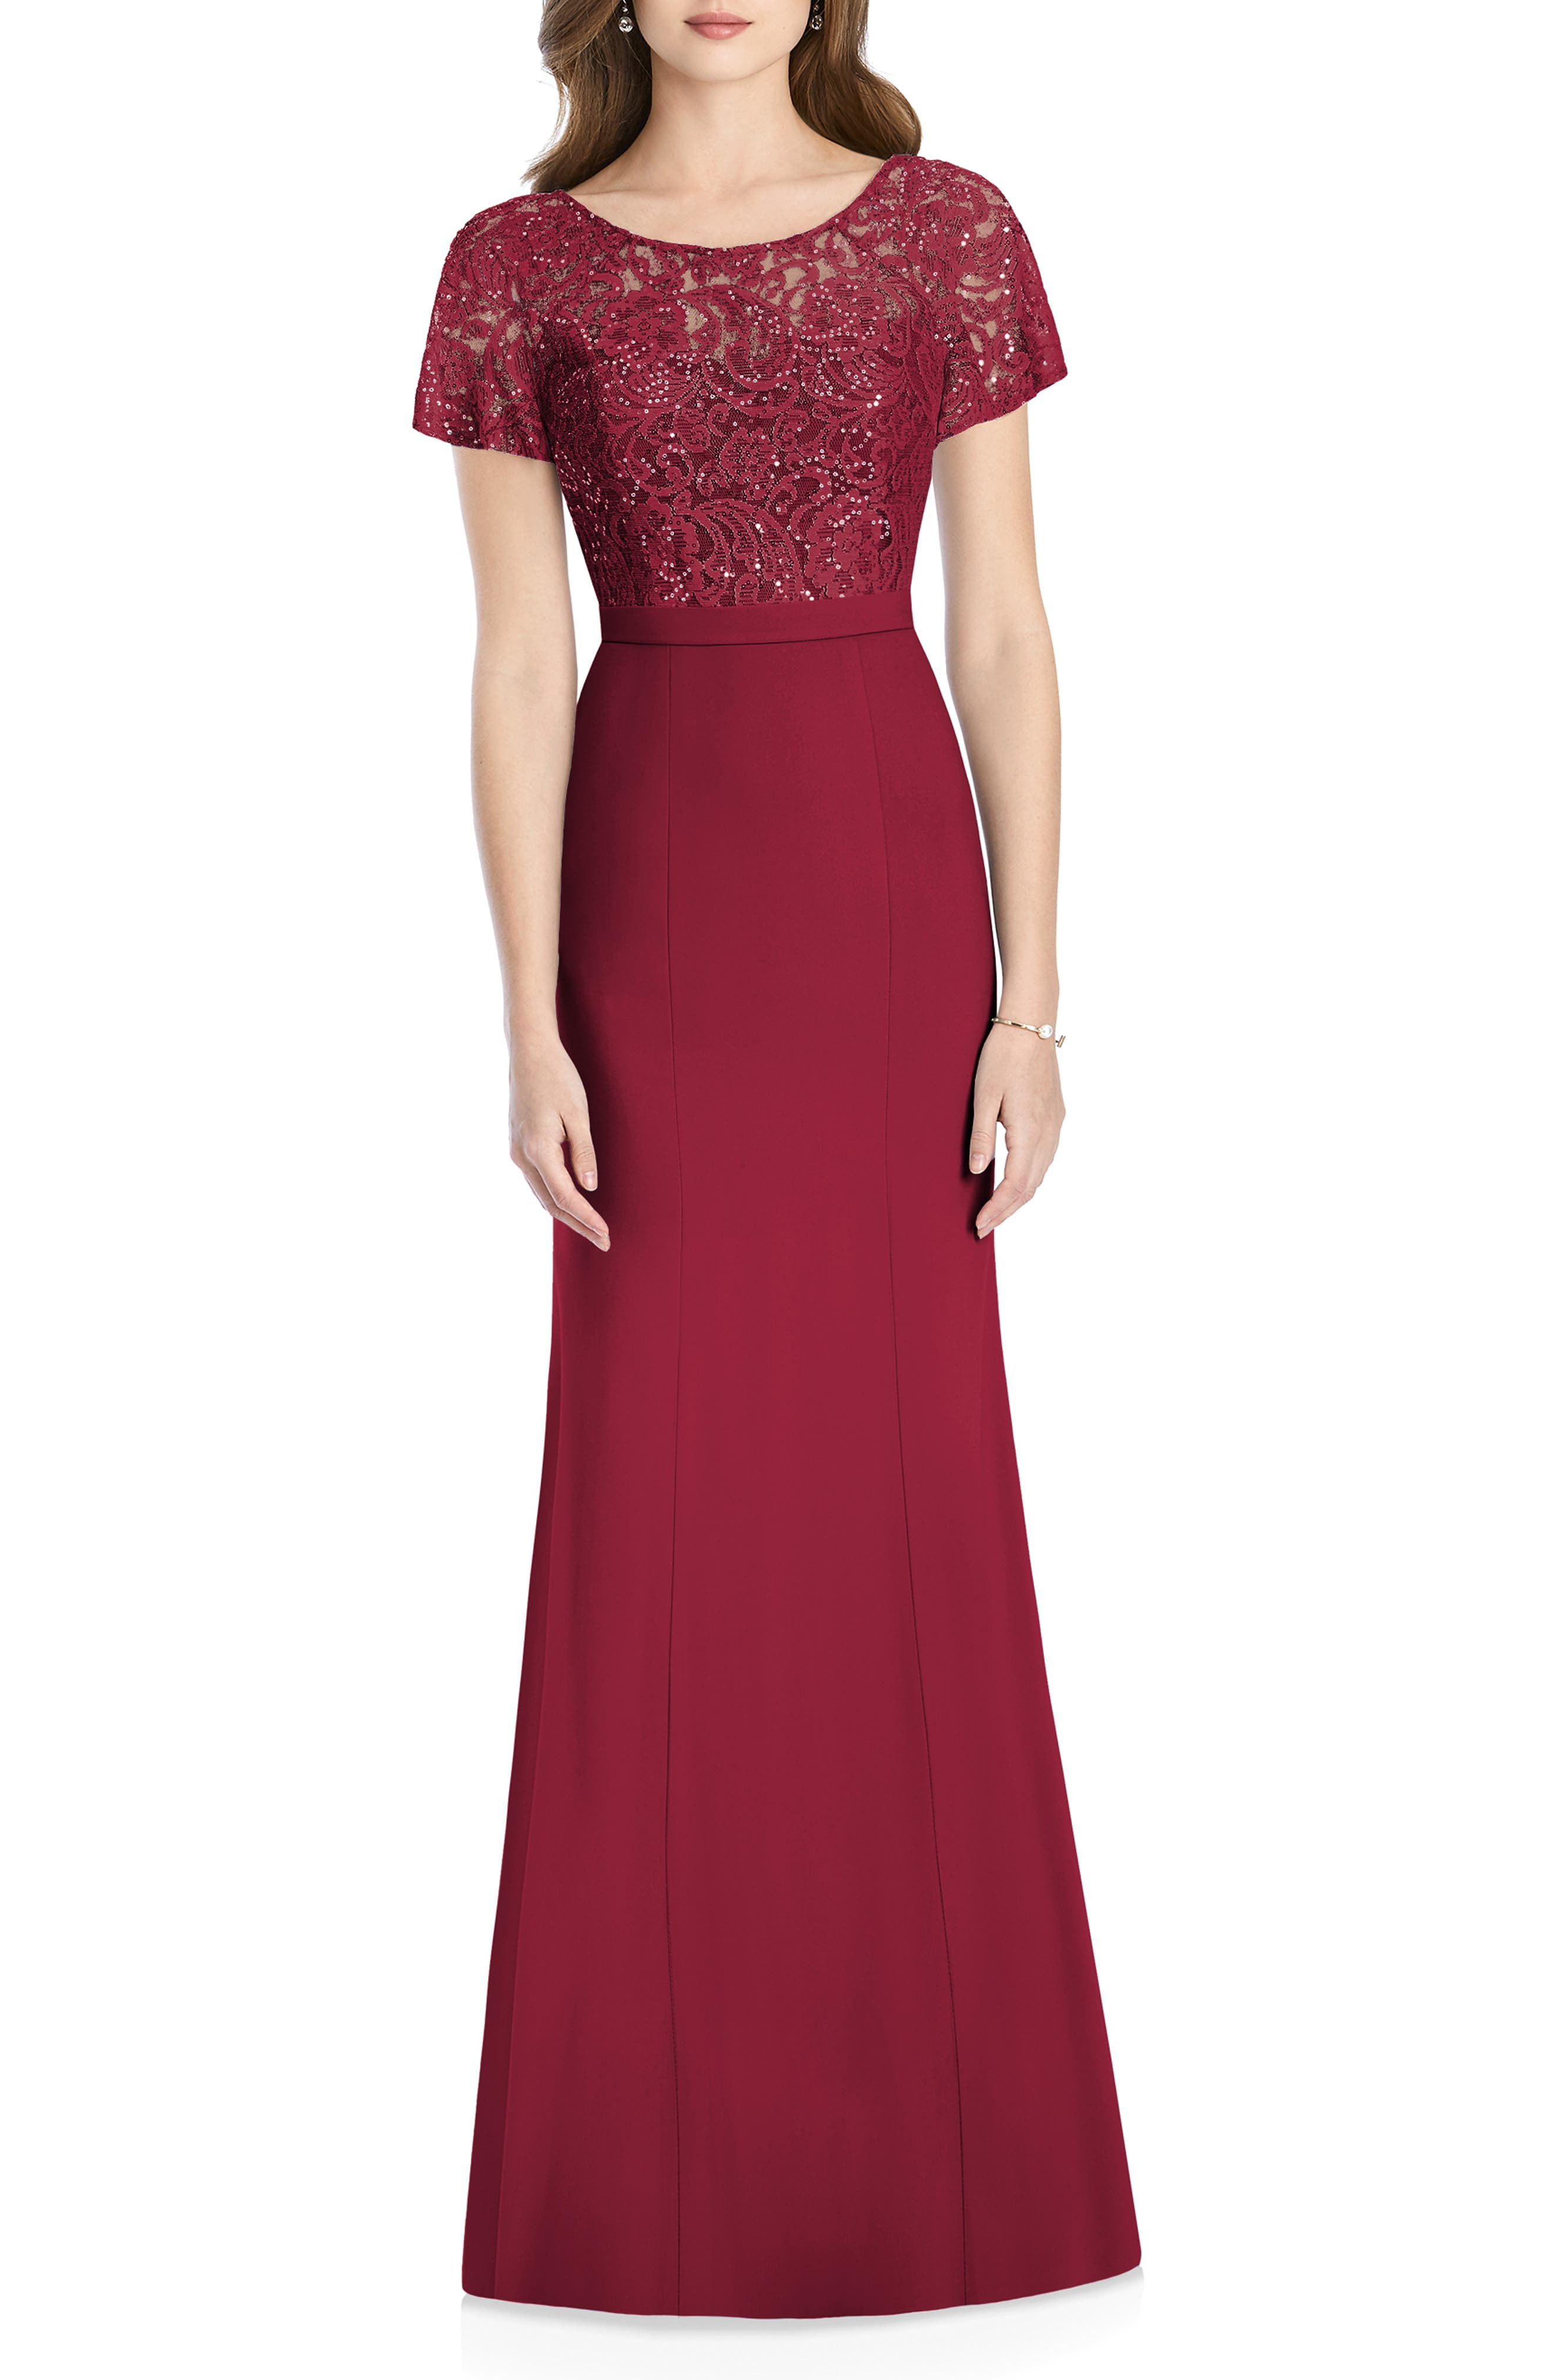 JENNY PACKHAM, Embellished Lace Gown, Main thumbnail 1, color, BURGUNDY